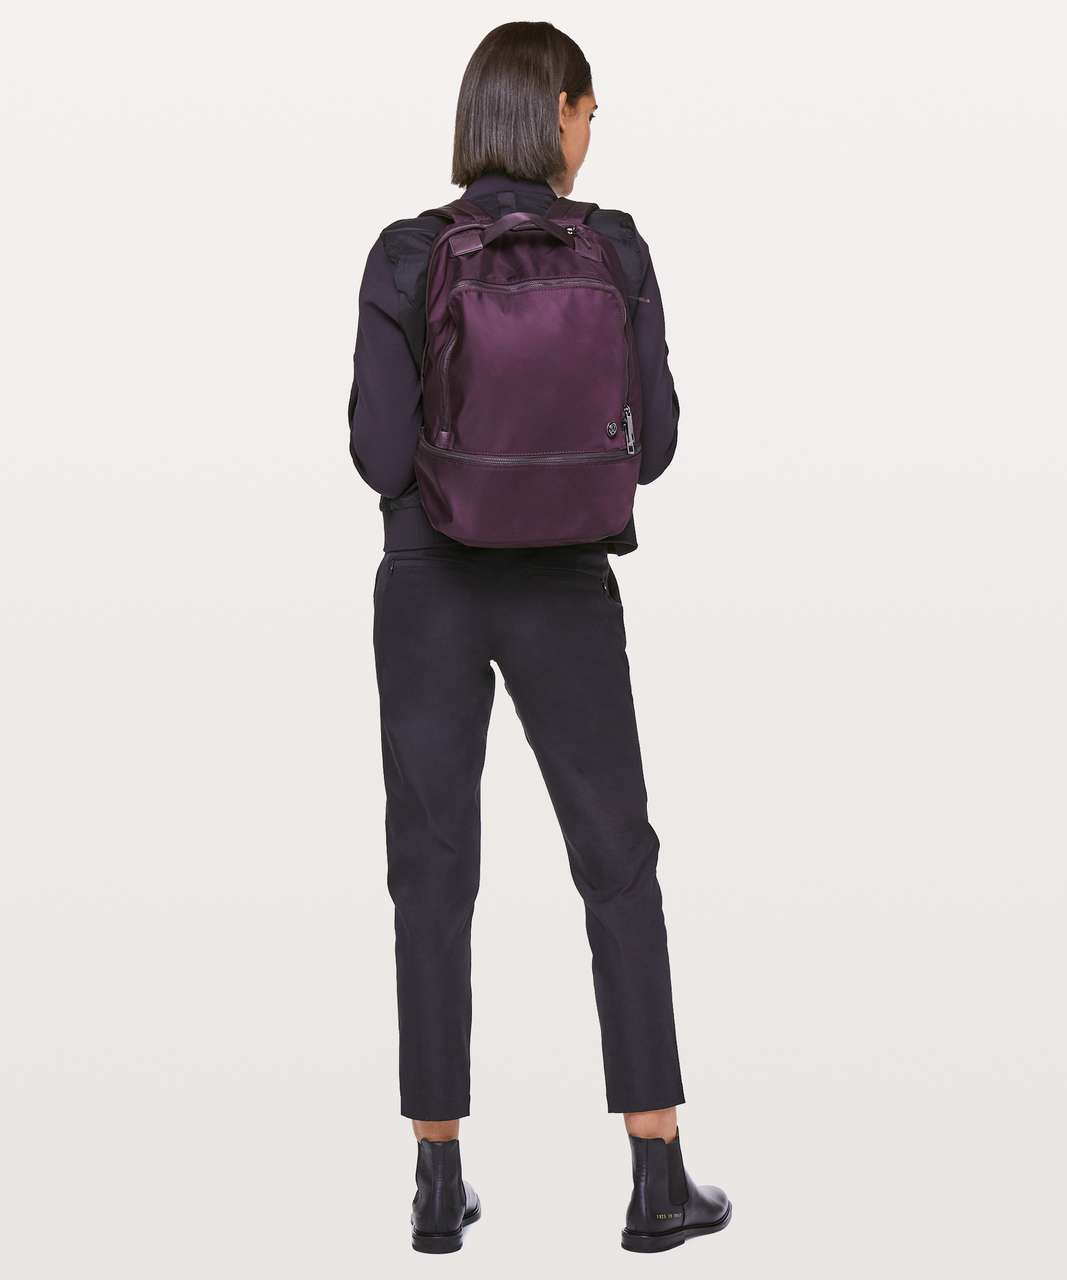 Lululemon City Adventurer Backpack *17L - Black Cherry (First Release)